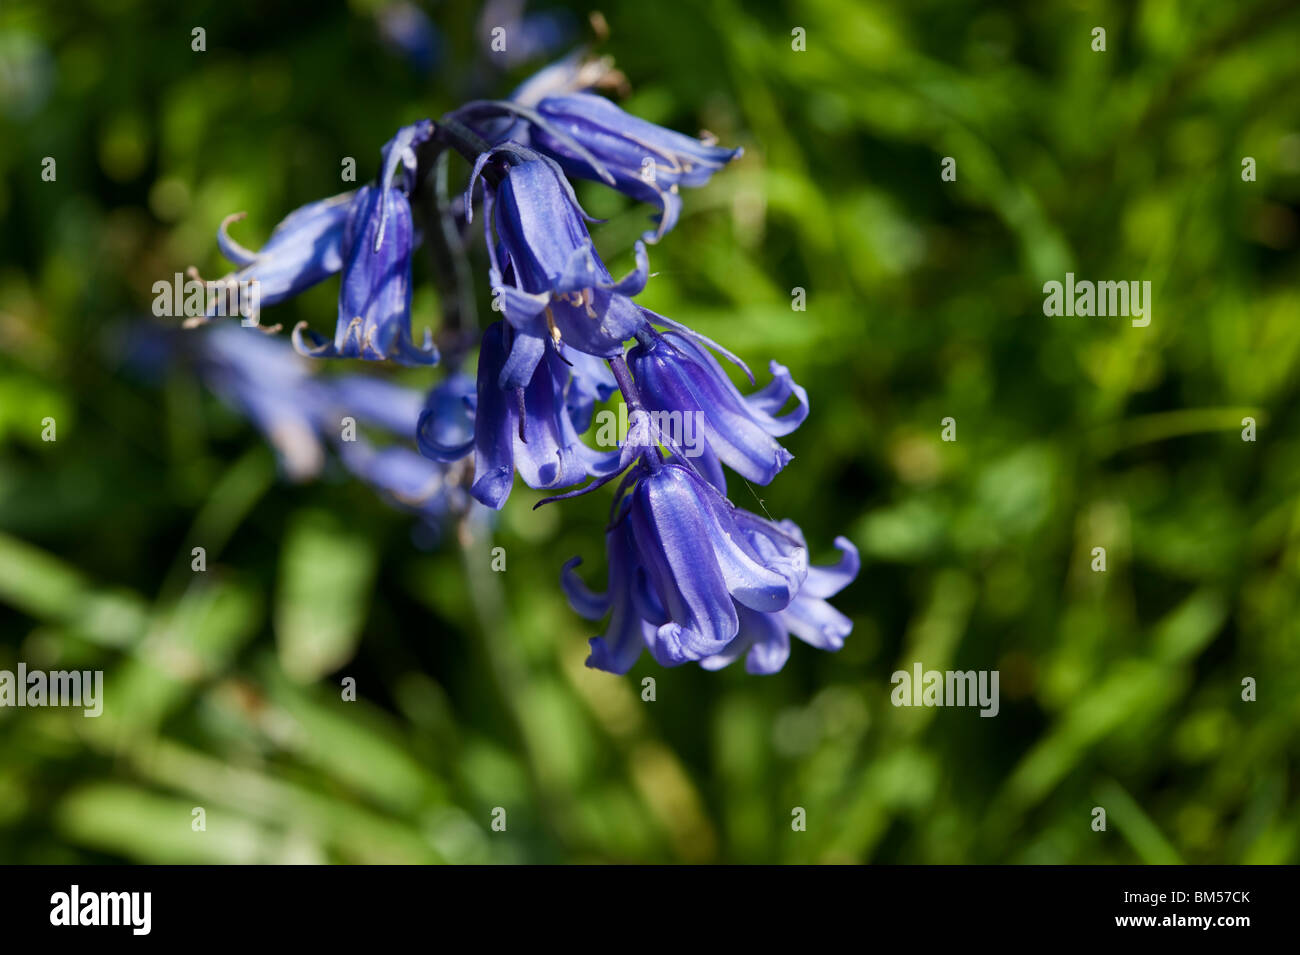 Bluebells, or Hyacinthoides non-scripta or  Endymion non-scriptum, Scilla non-scripta, blooming in May - Stock Image